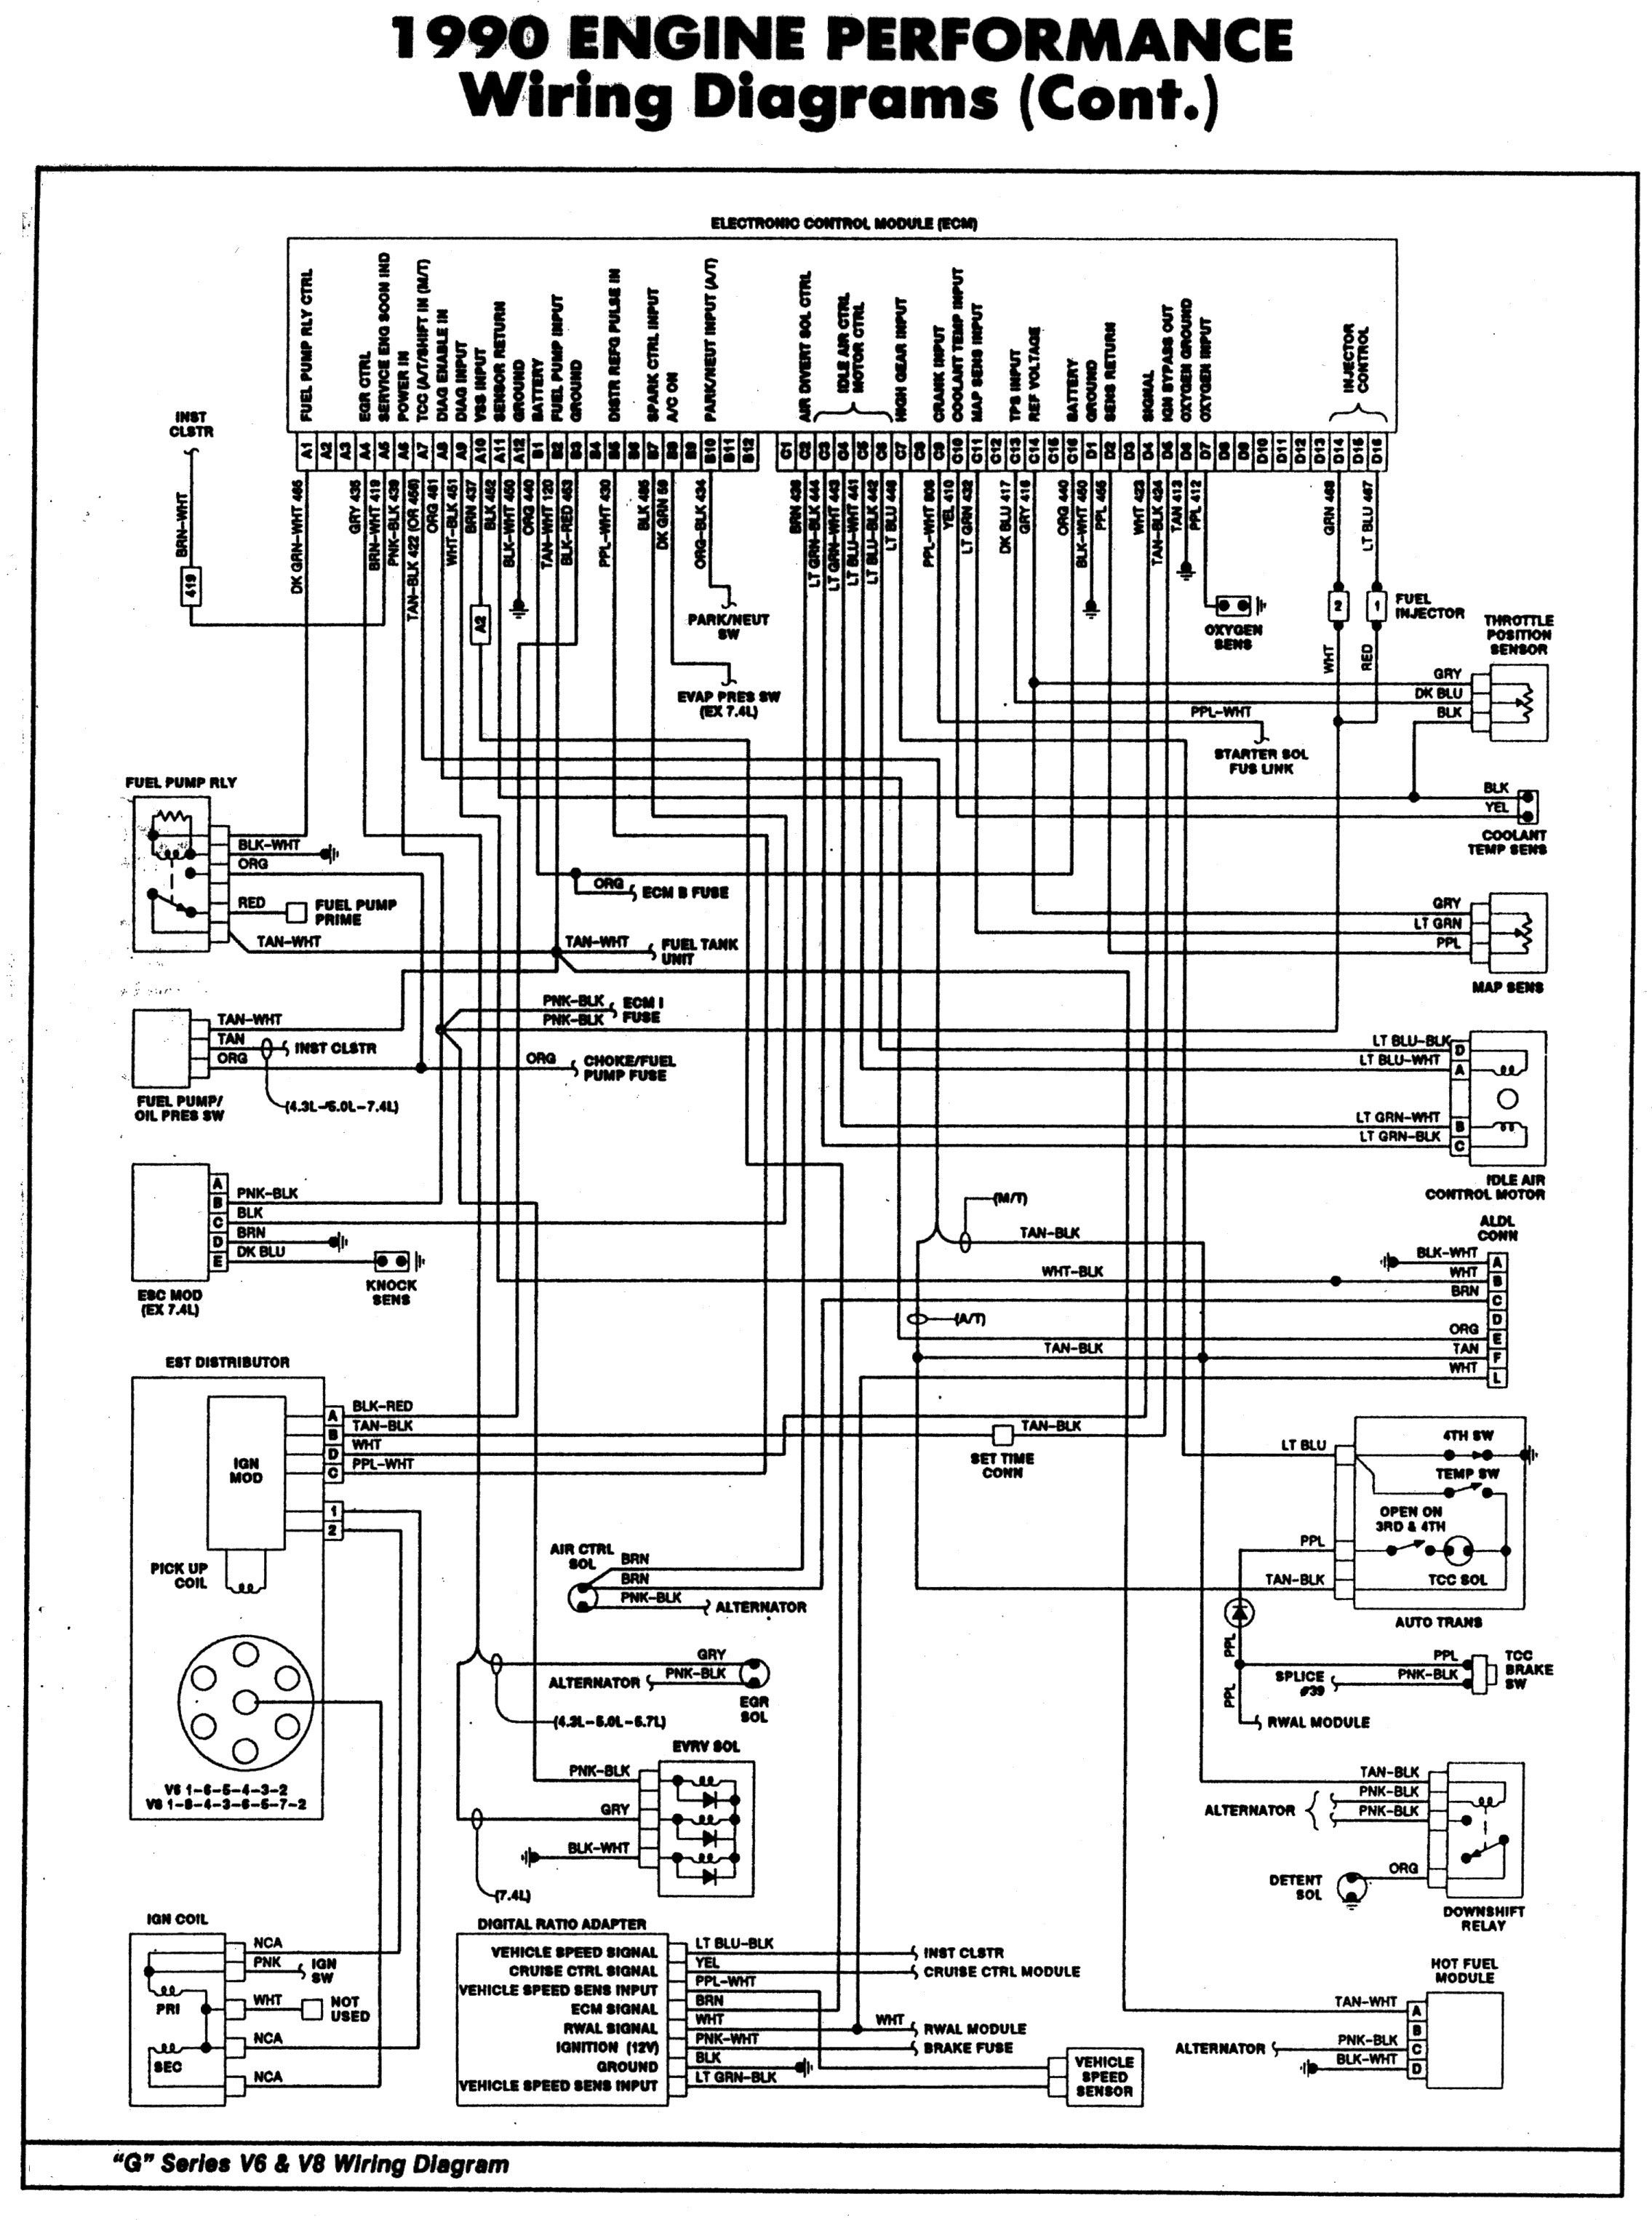 Chevrolet Wiring Diagram on chevrolet ignition switch, chevrolet owner's manual, chevrolet forum, chevrolet ignition wiring, chevrolet battery diagram, chevrolet fuel gauge wiring, chevrolet babes, chevrolet engine diagram, chevrolet cooling system, chevrolet gassers, chevrolet vacuum diagrams, chevrolet schematics, chevrolet exhaust diagram, chevrolet black reaper, chevrolet thermostat replacement, chevrolet key fob programming, chevrolet midnight edition, chevrolet remote control, chevrolet transmission diagram, chevrolet repair manual,